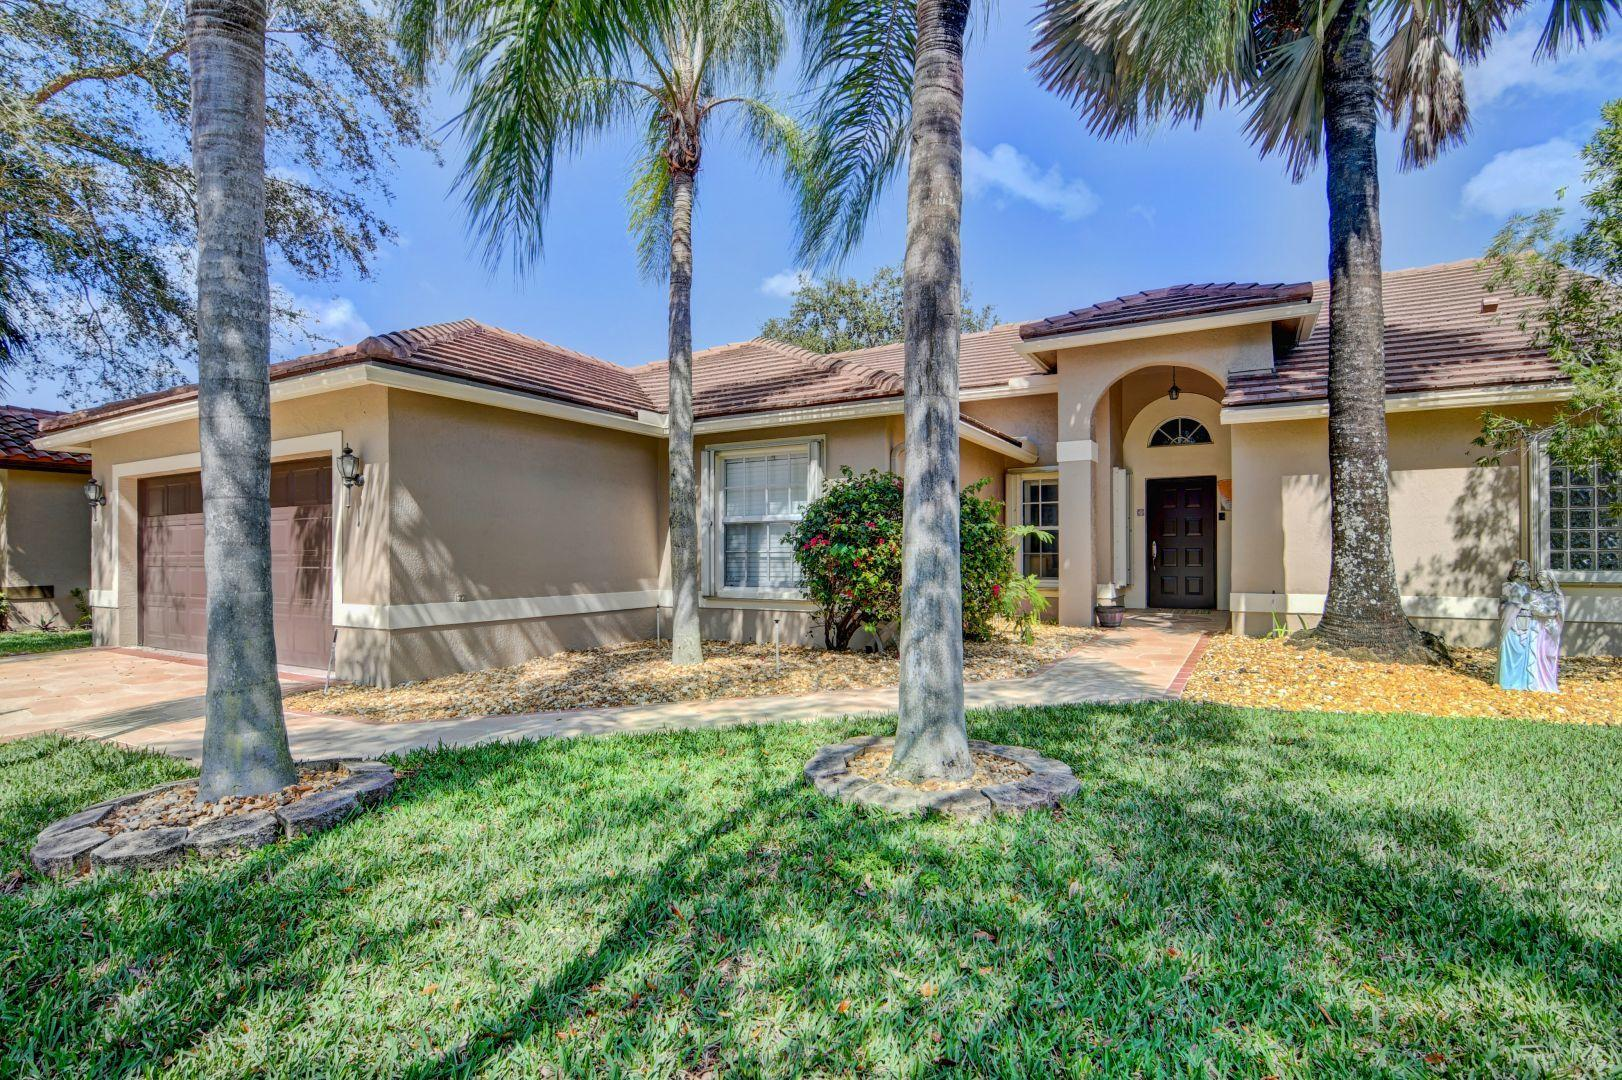 4711 75th Street, Coconut Creek, Florida 33073, 4 Bedrooms Bedrooms, ,2 BathroomsBathrooms,Single Family,For Sale,Tall Trees,75th,RX-10506760